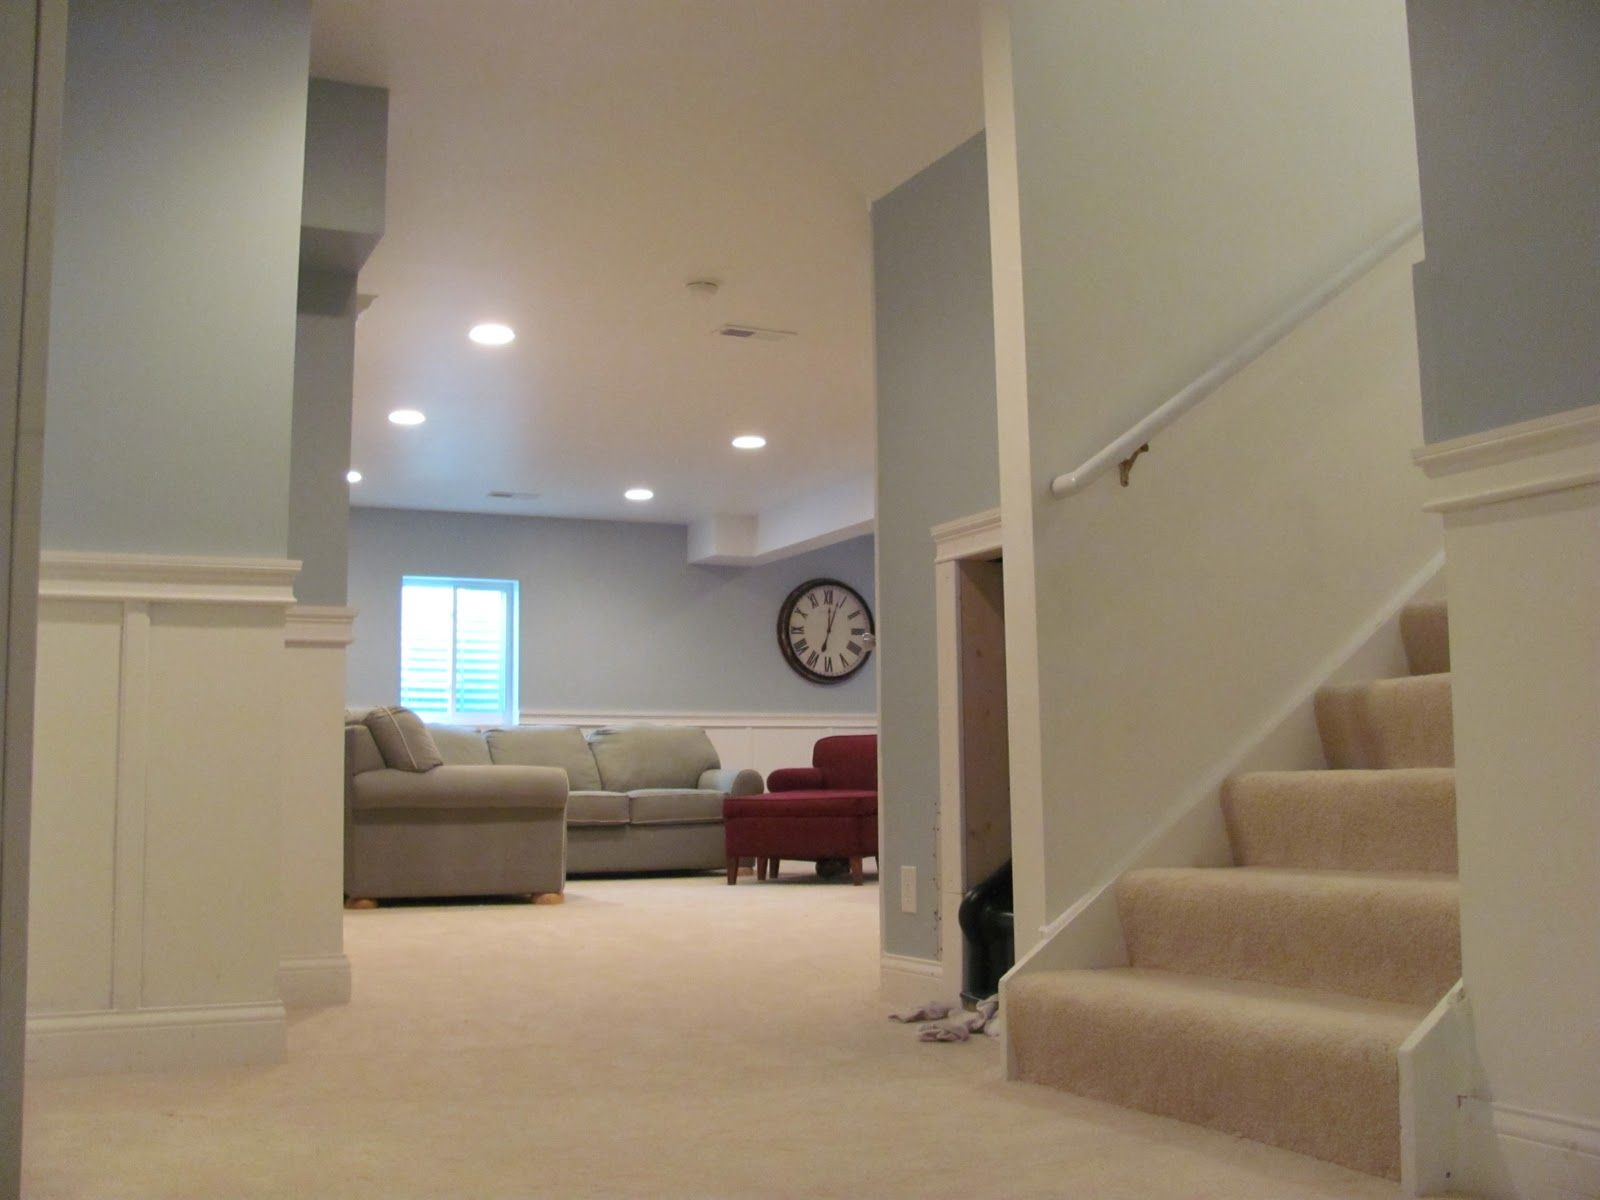 diy show off basement colors basement remodeling on basement color palette ideas id=76275